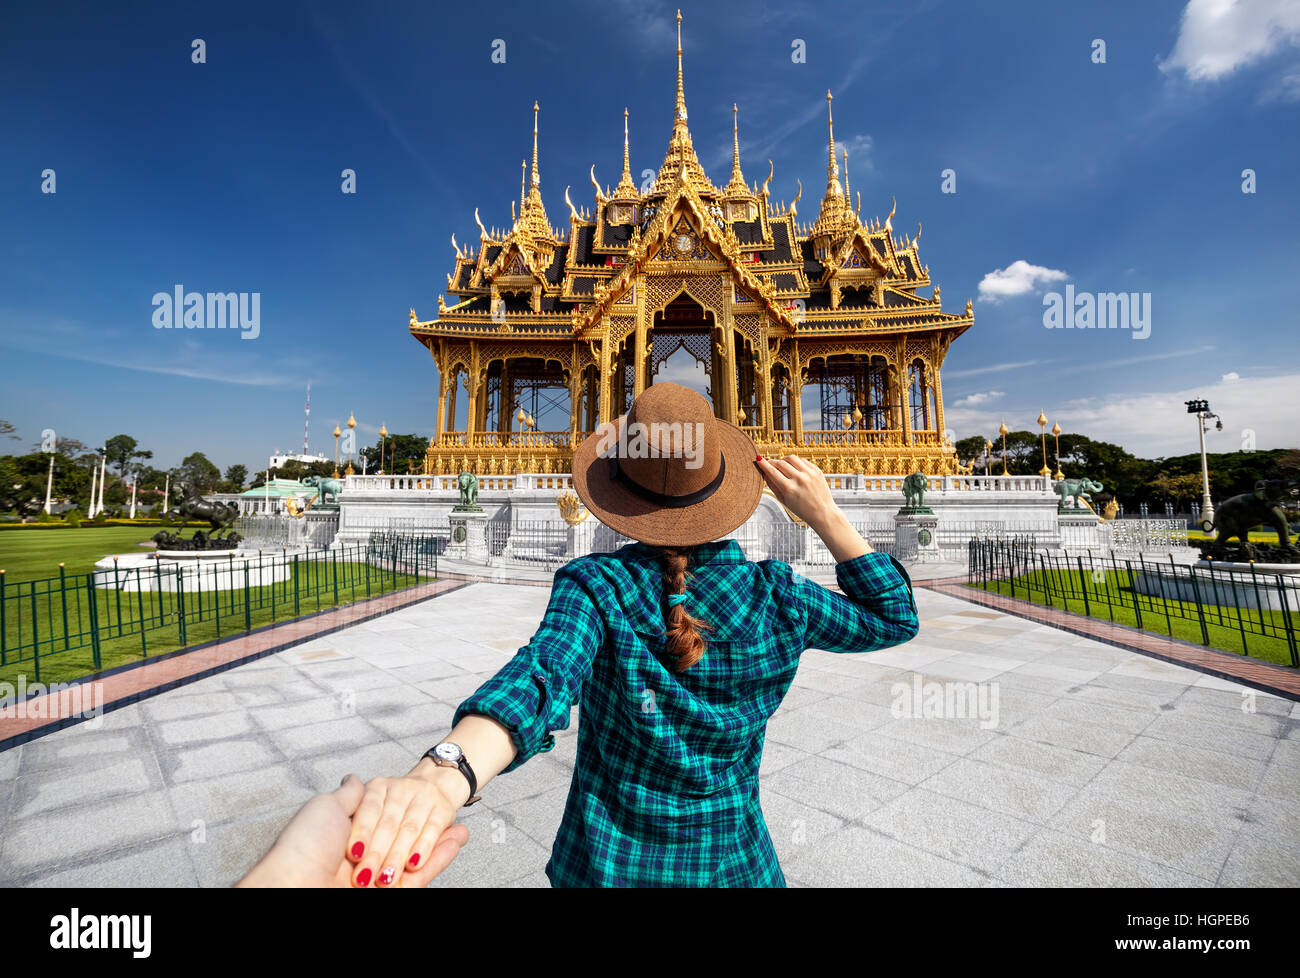 Woman in hat and green checked shirt leading man to the Ananta Samakhom Throne Hall in Thai Royal Dusit Palace, - Stock Image